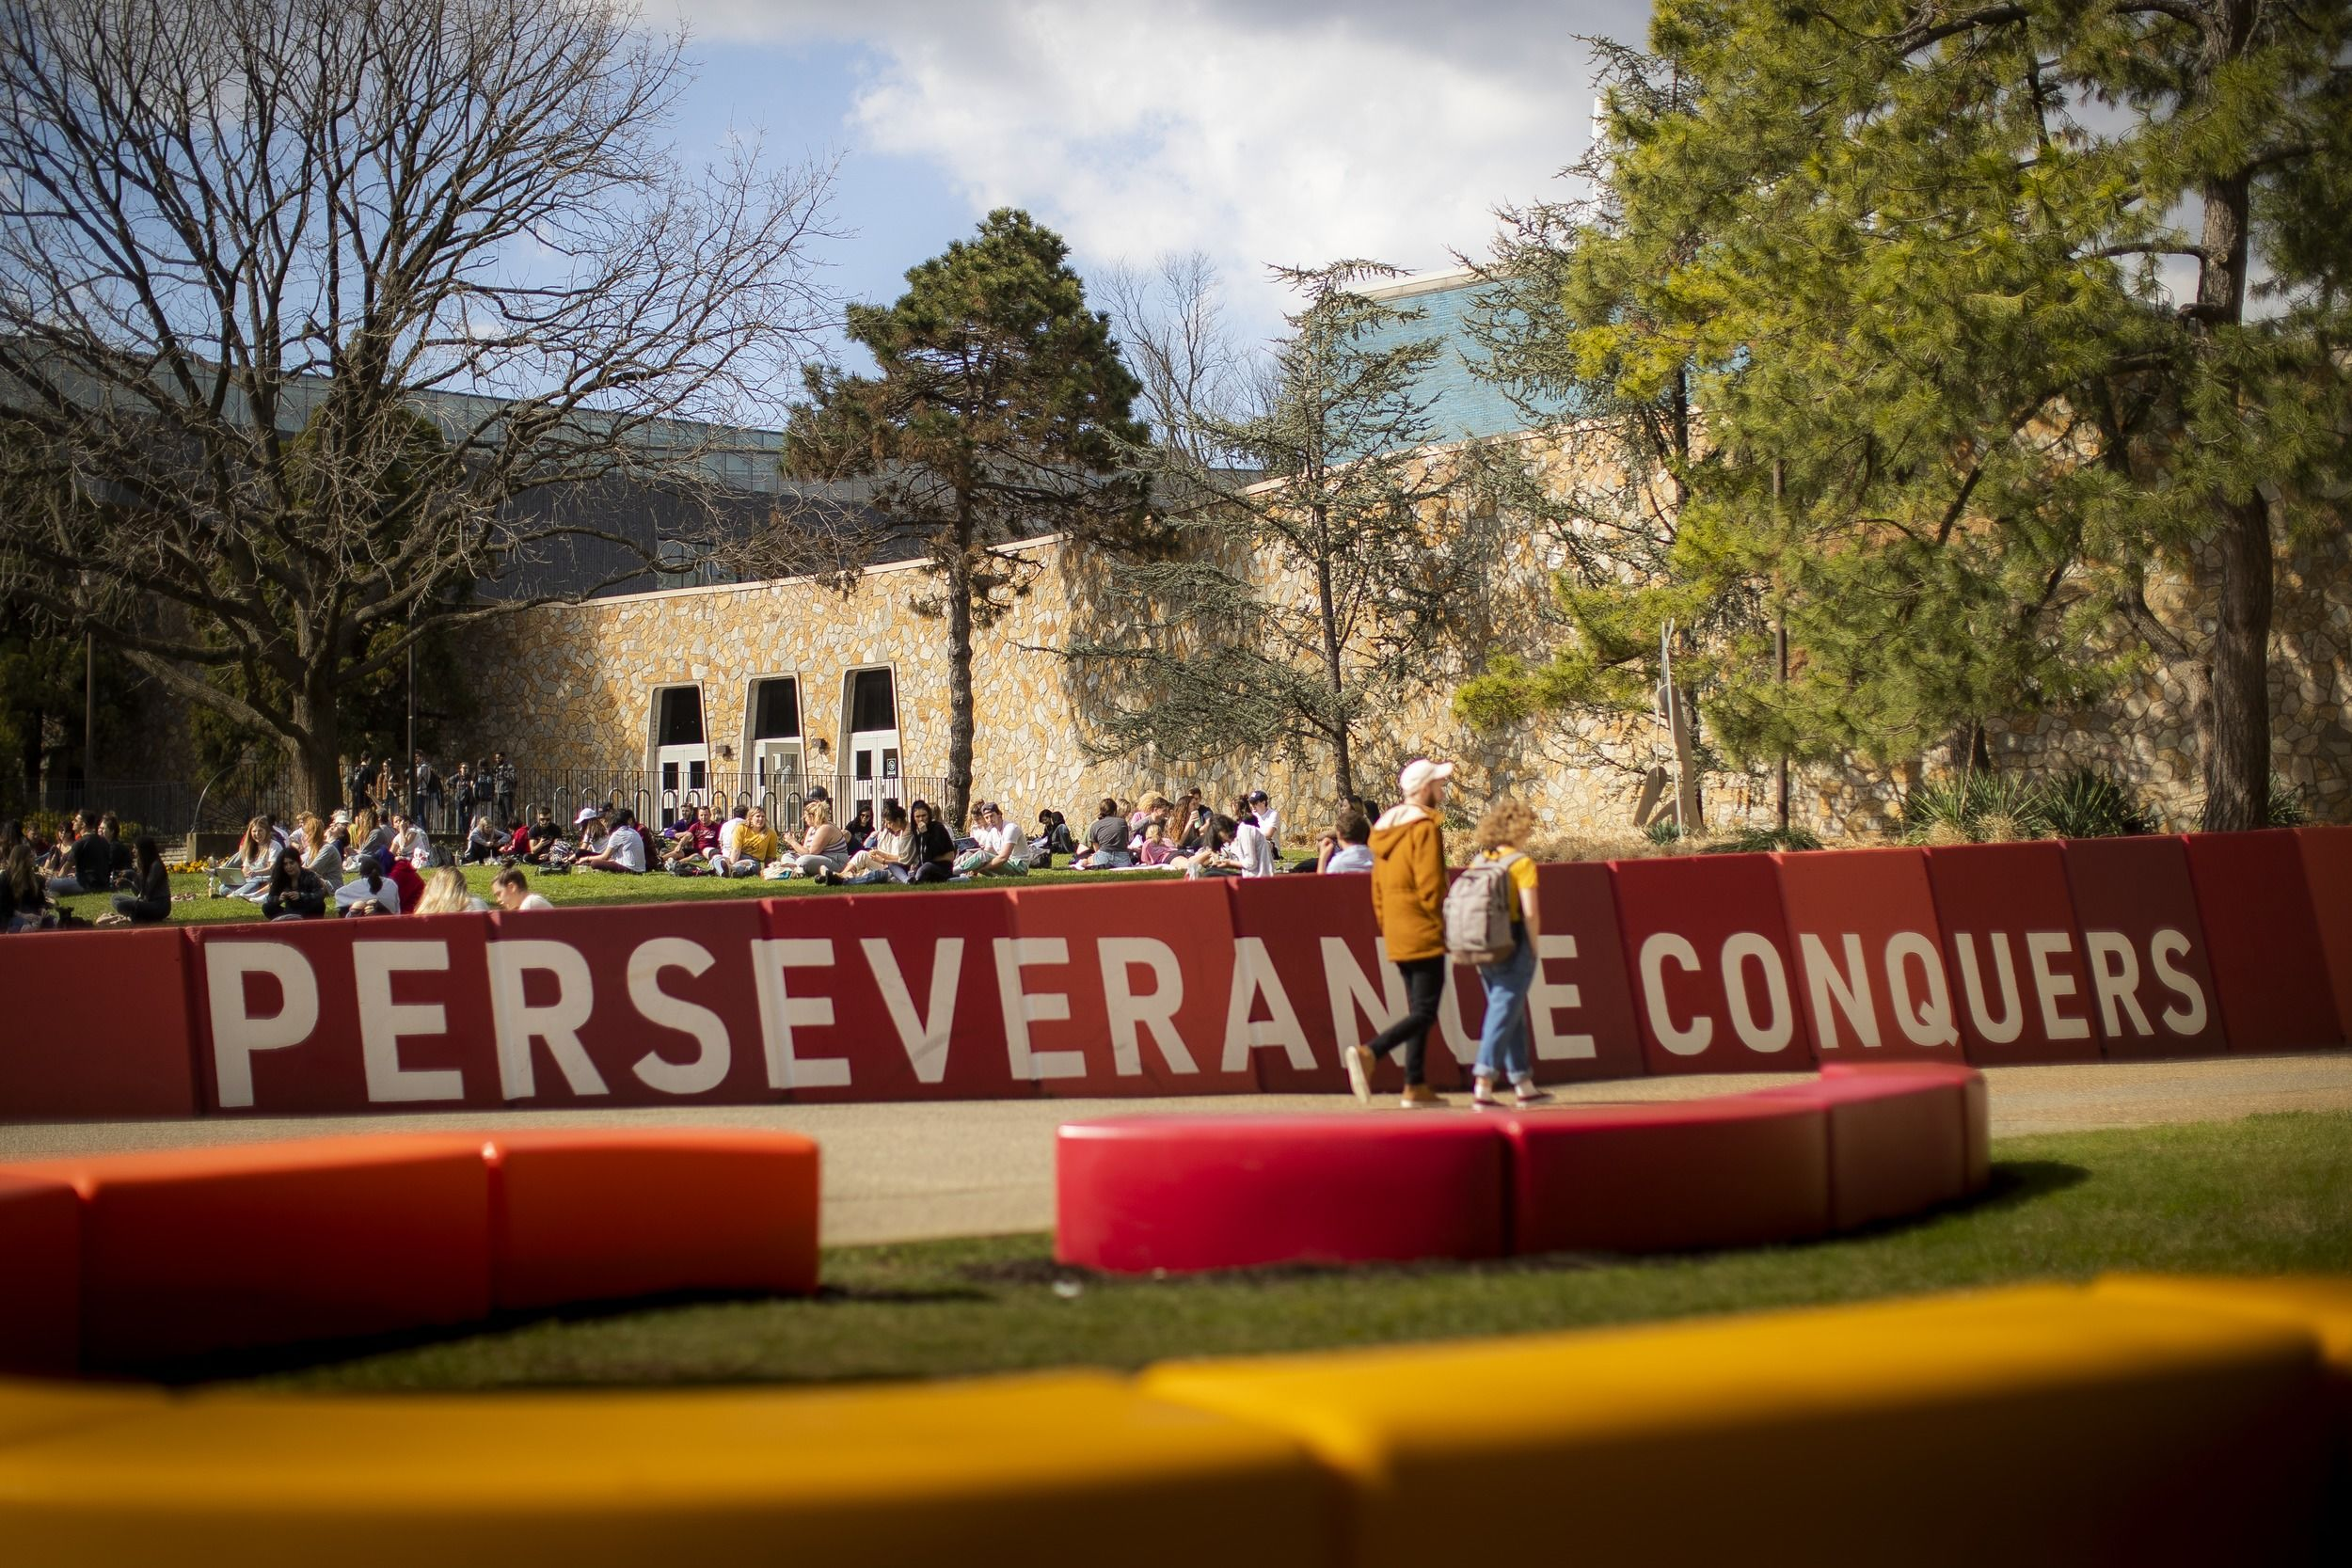 Perseverance Conquers mural on campus